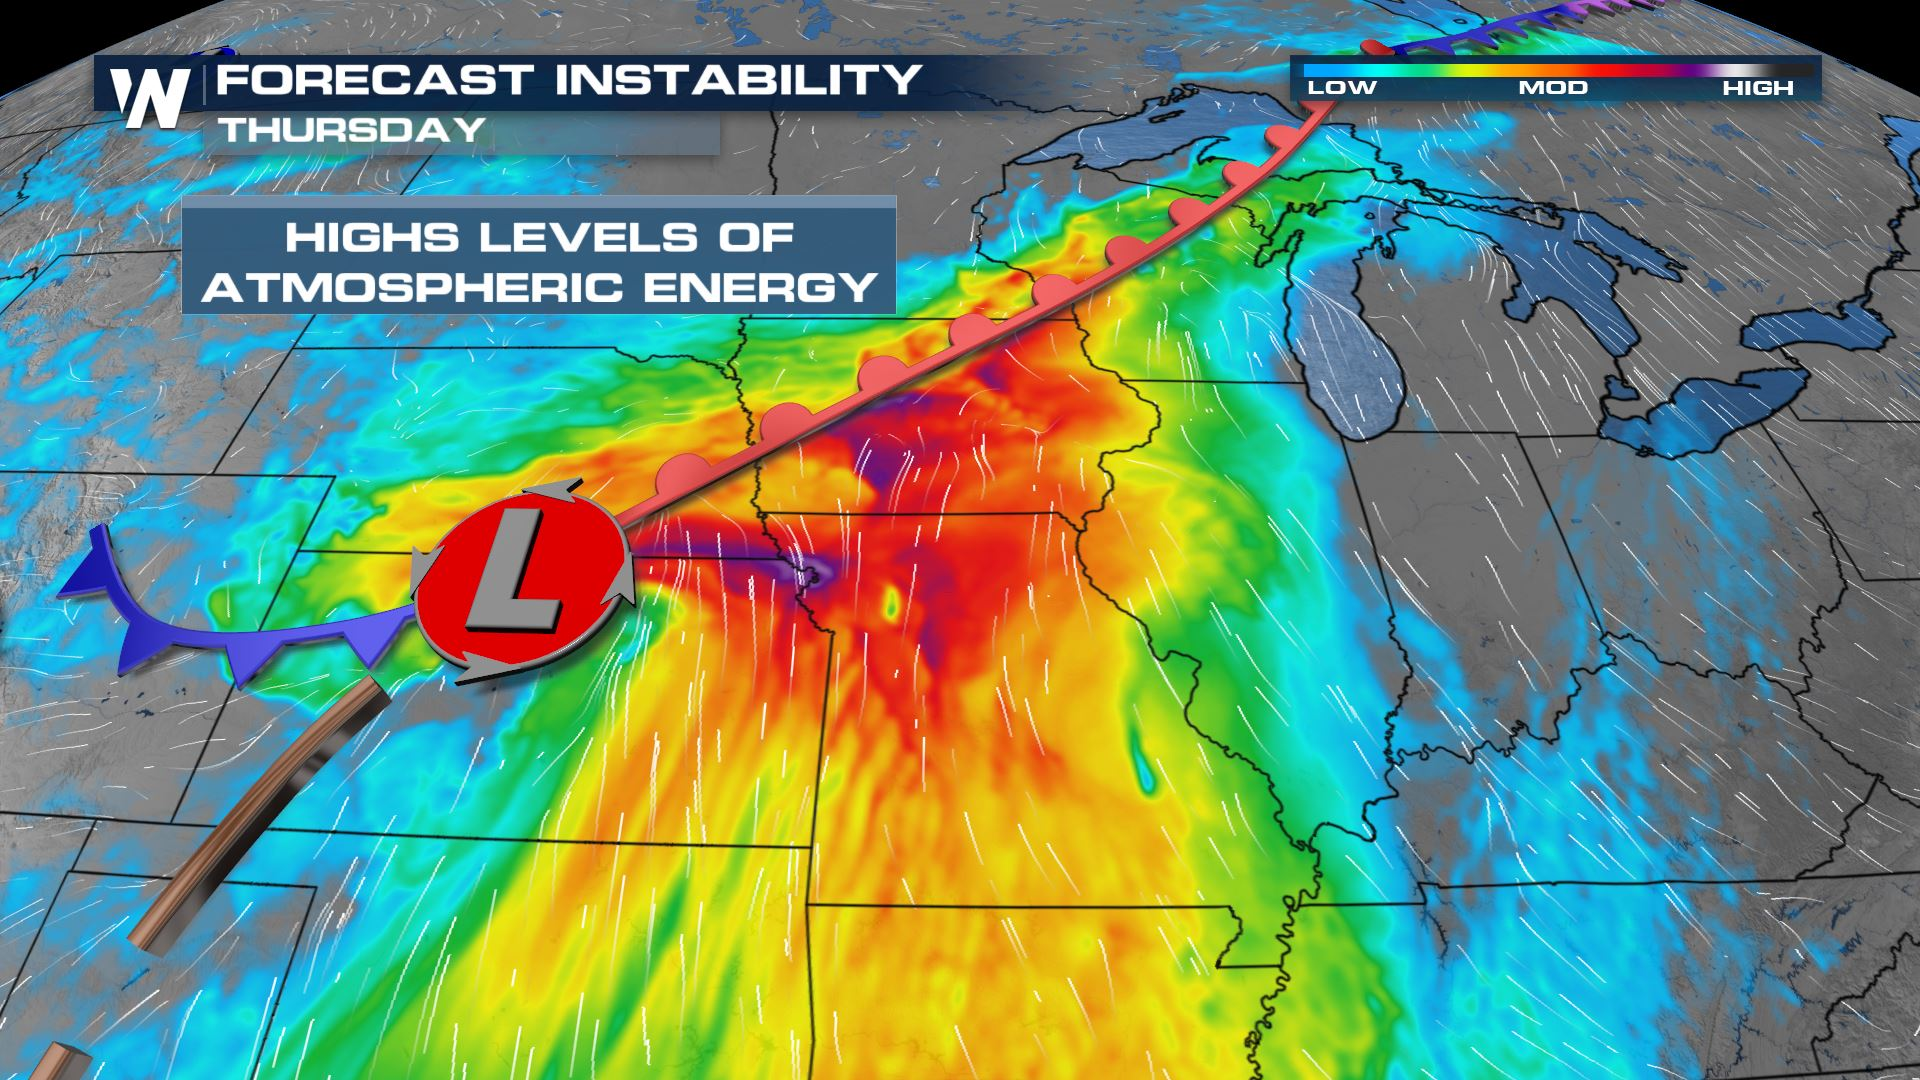 Severe Weather Threat in the Midwest & Plains